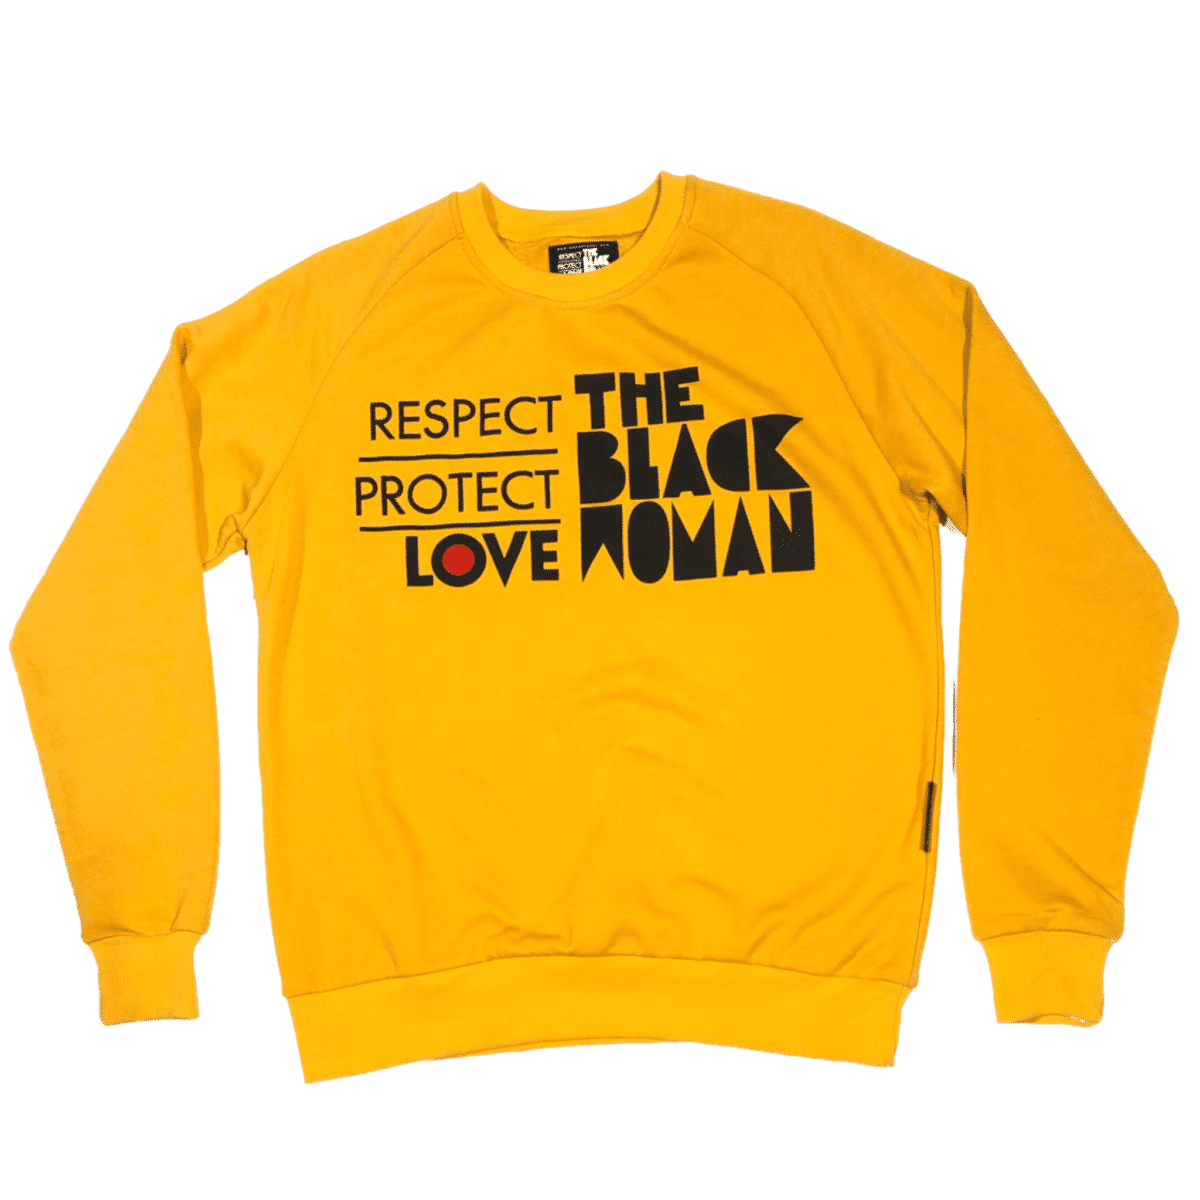 Respect Protect Love The Black Woman® Yellow Unisex Crewneck Sweatshirt HGC Apparel